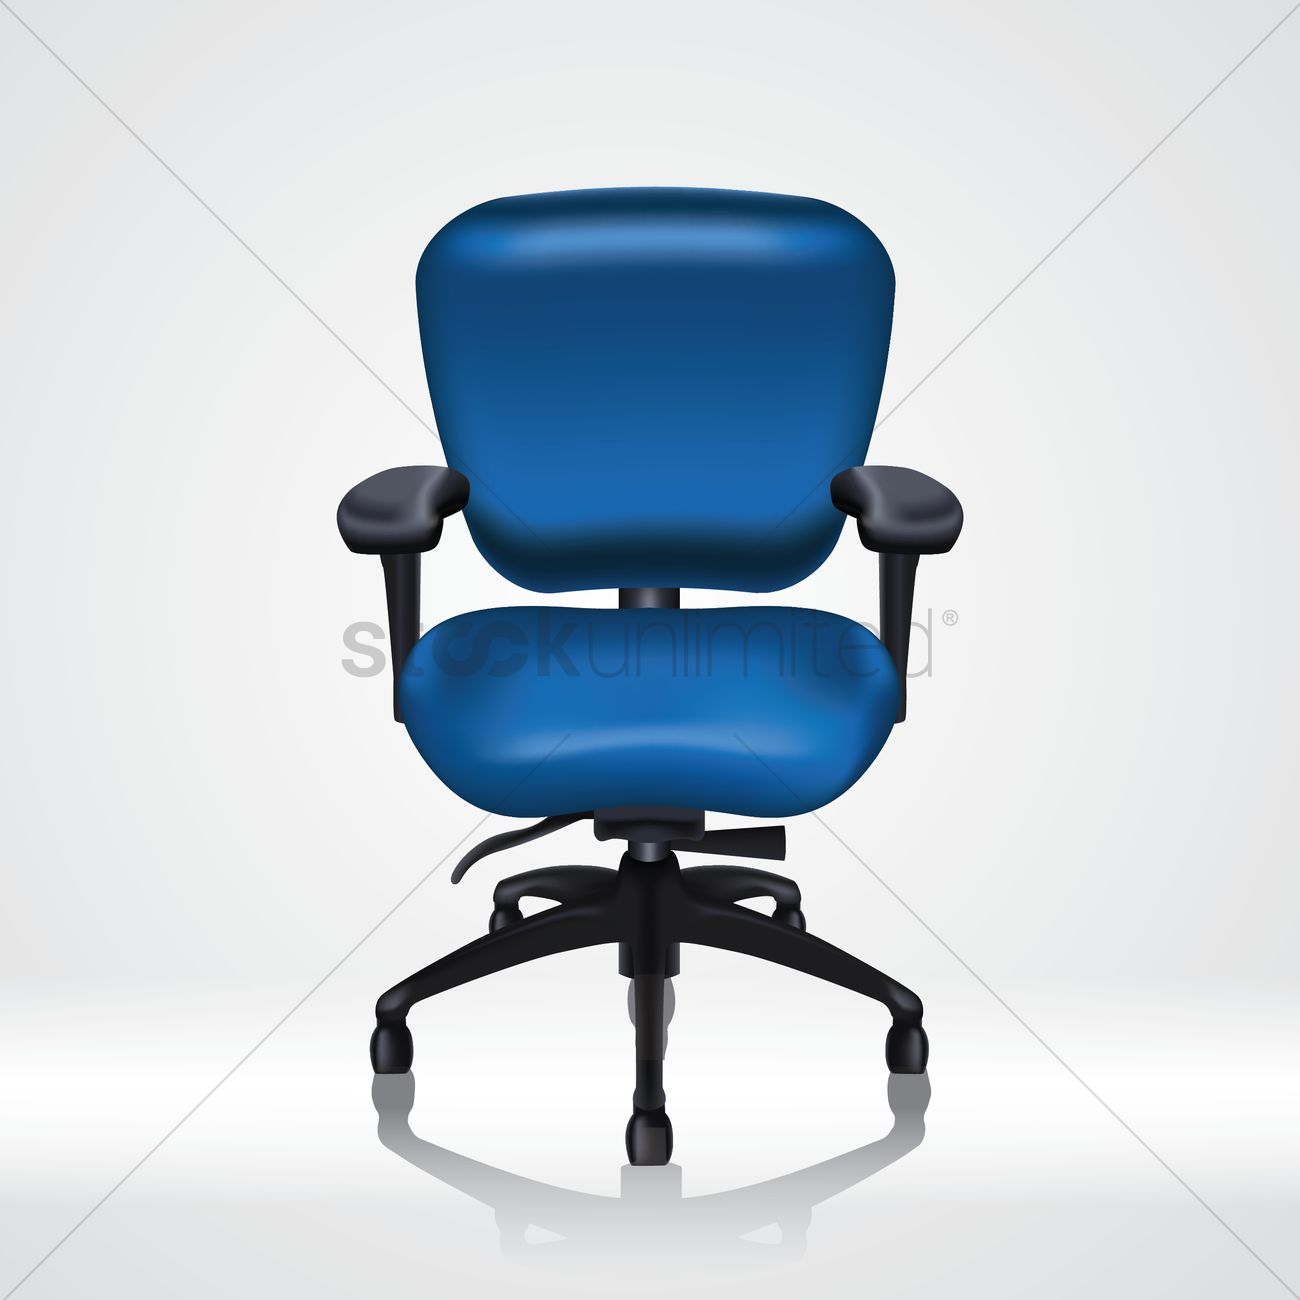 office chairs unlimited for tweens chair vector image 1528044 stockunlimited